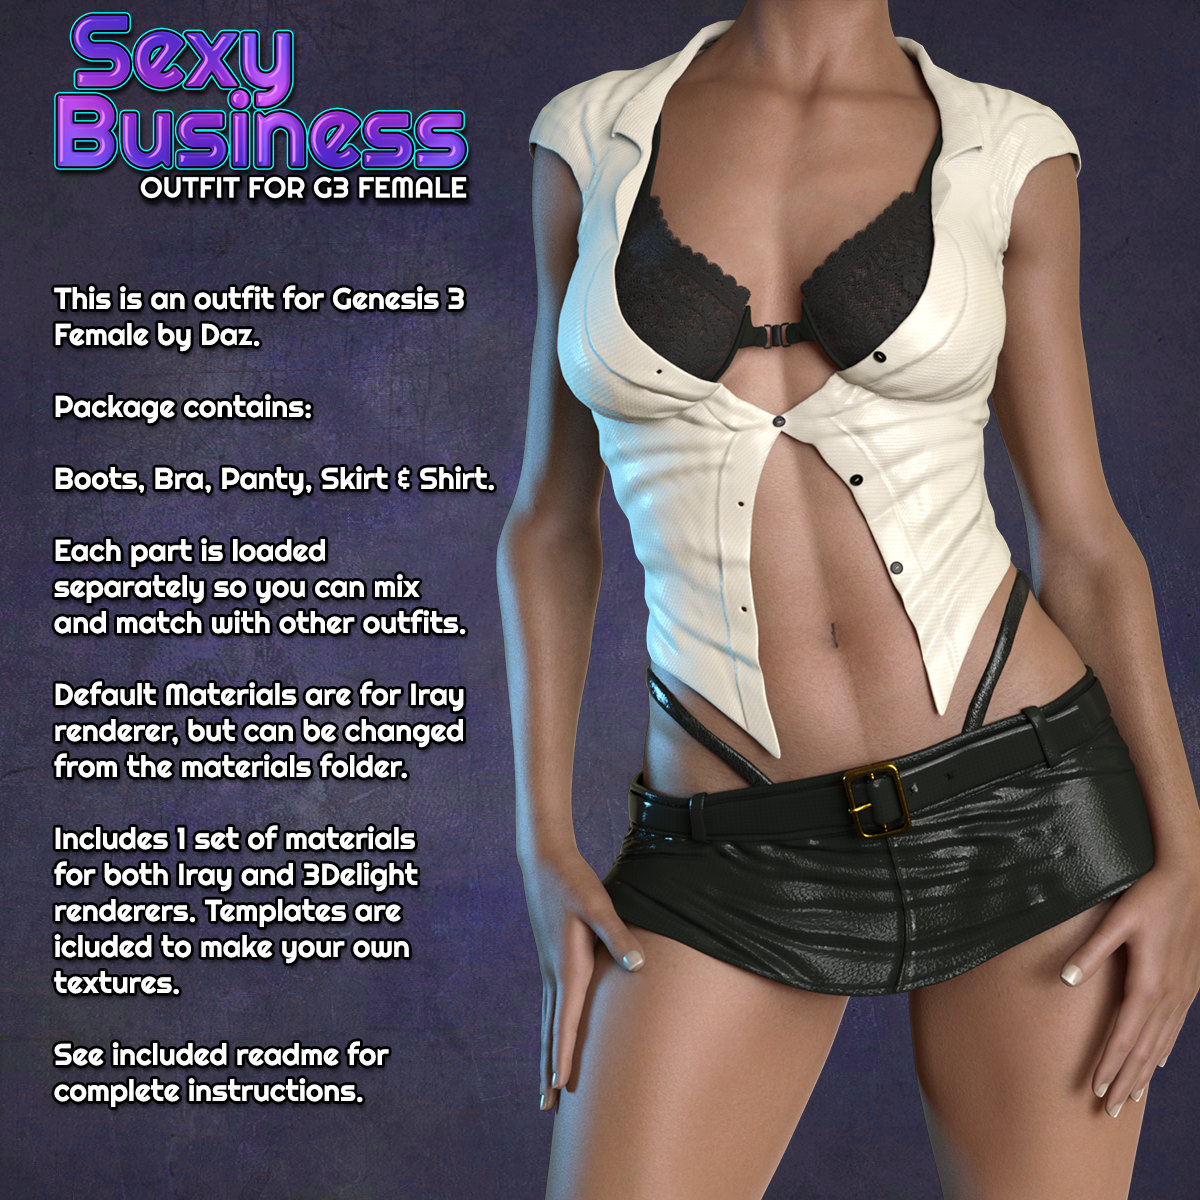 Exnem Sexy Business for G3 Female